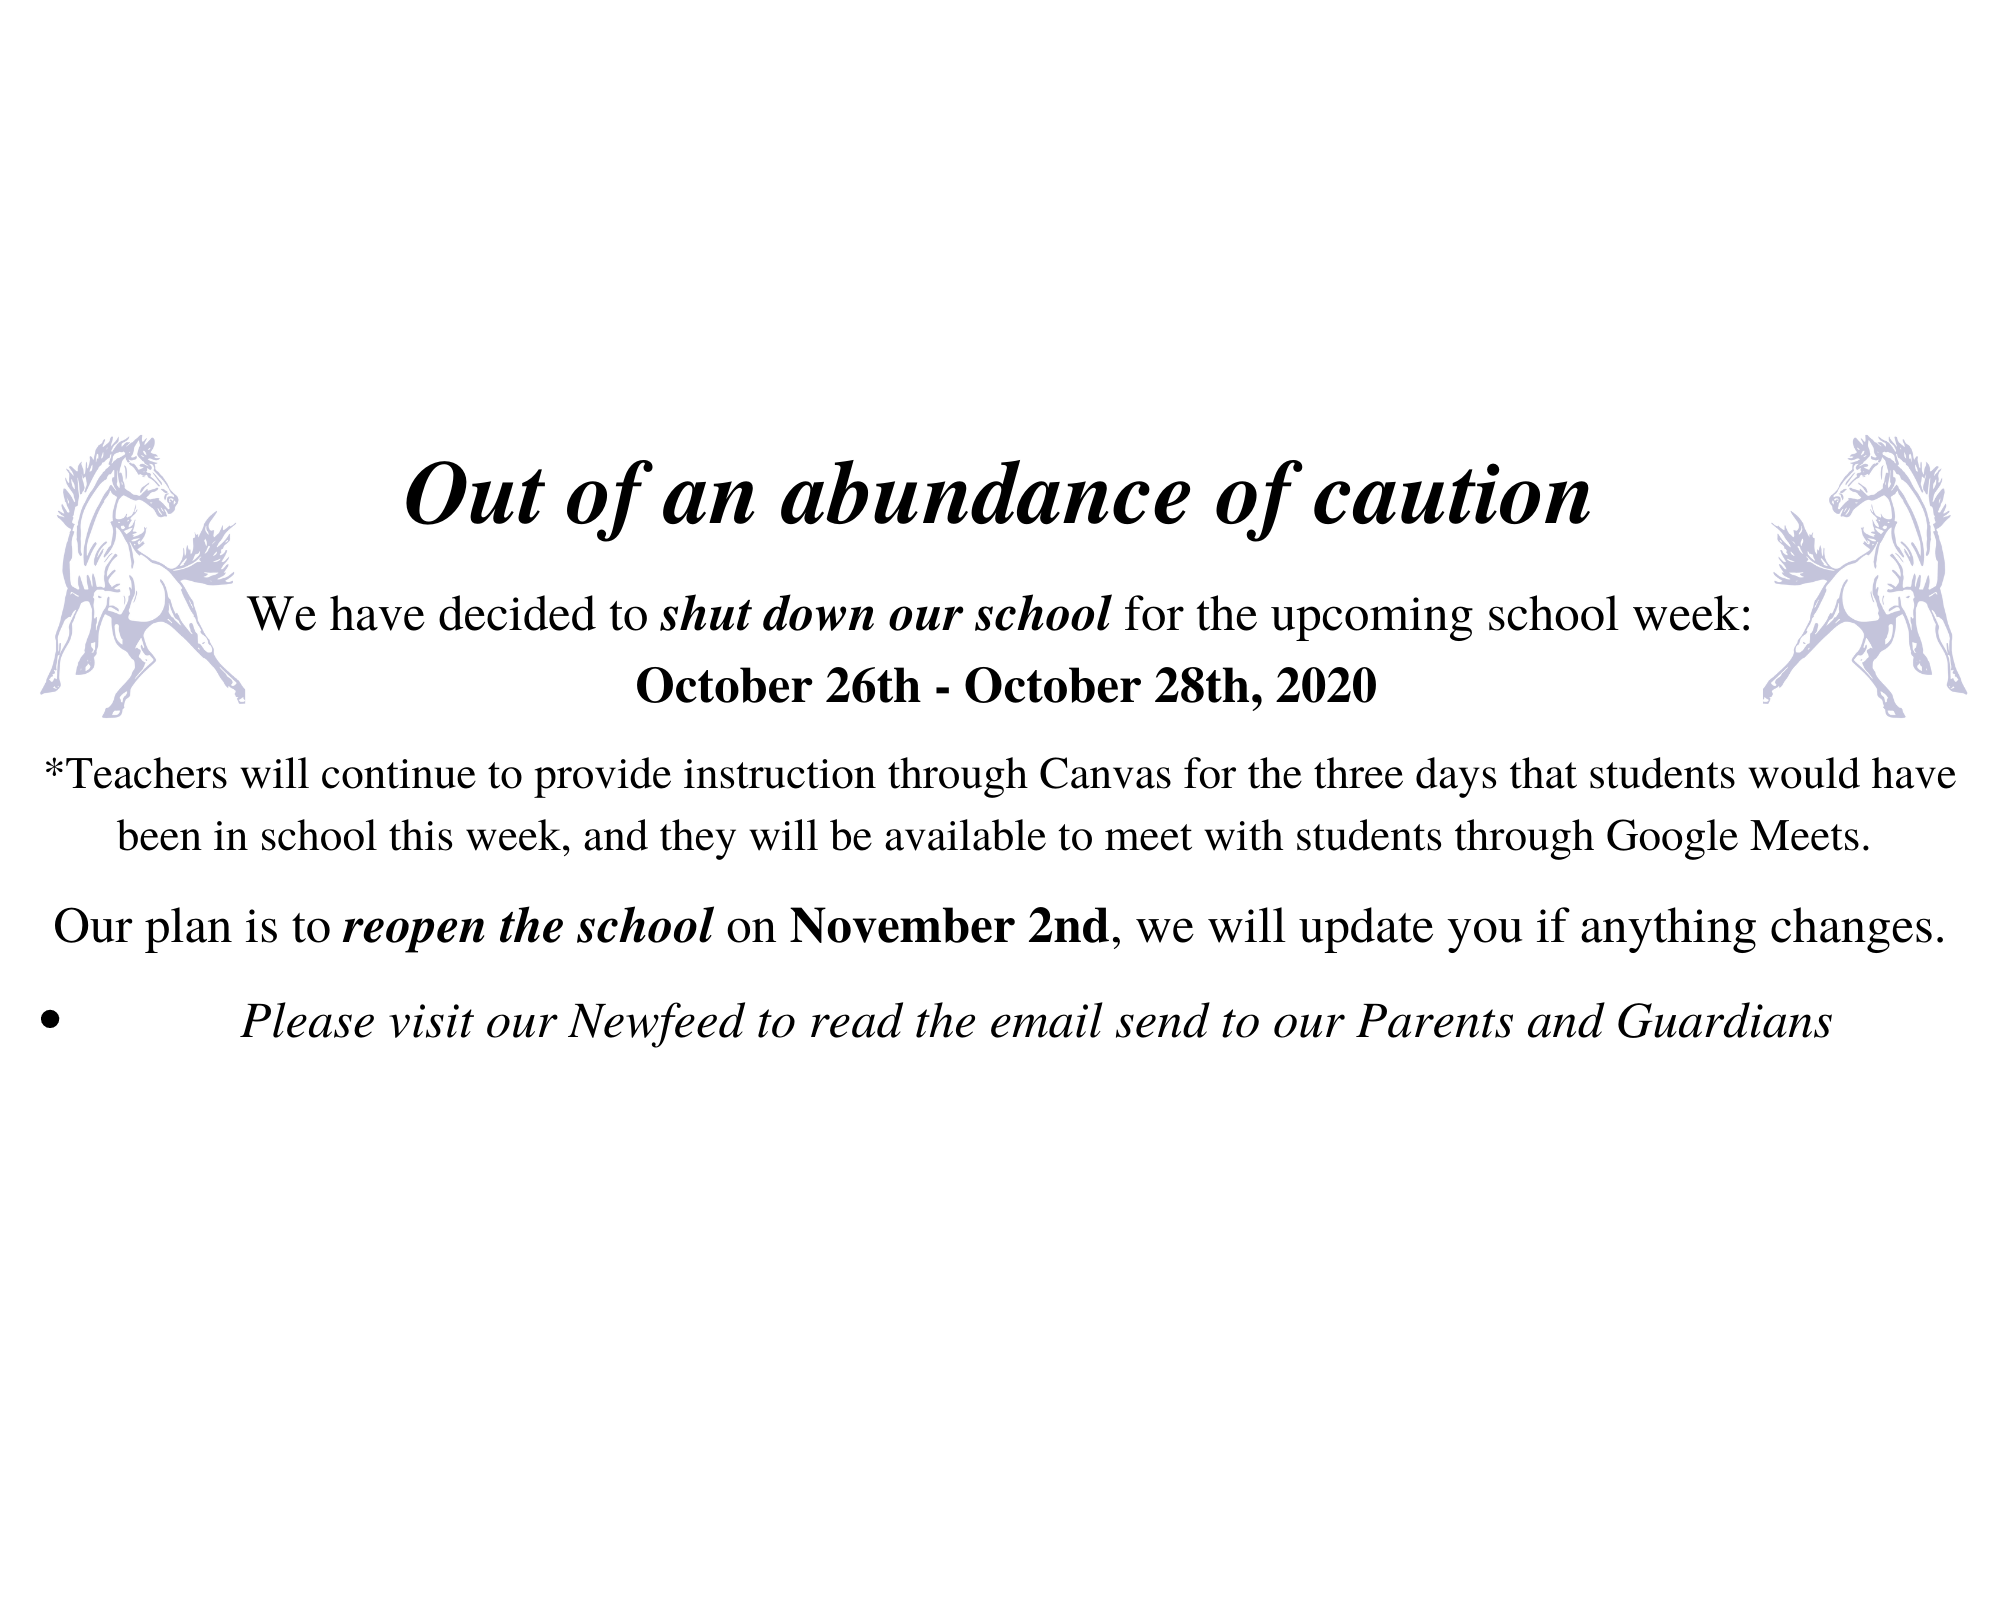 Out of an abundance of caution...October 26th - 28th School closure.